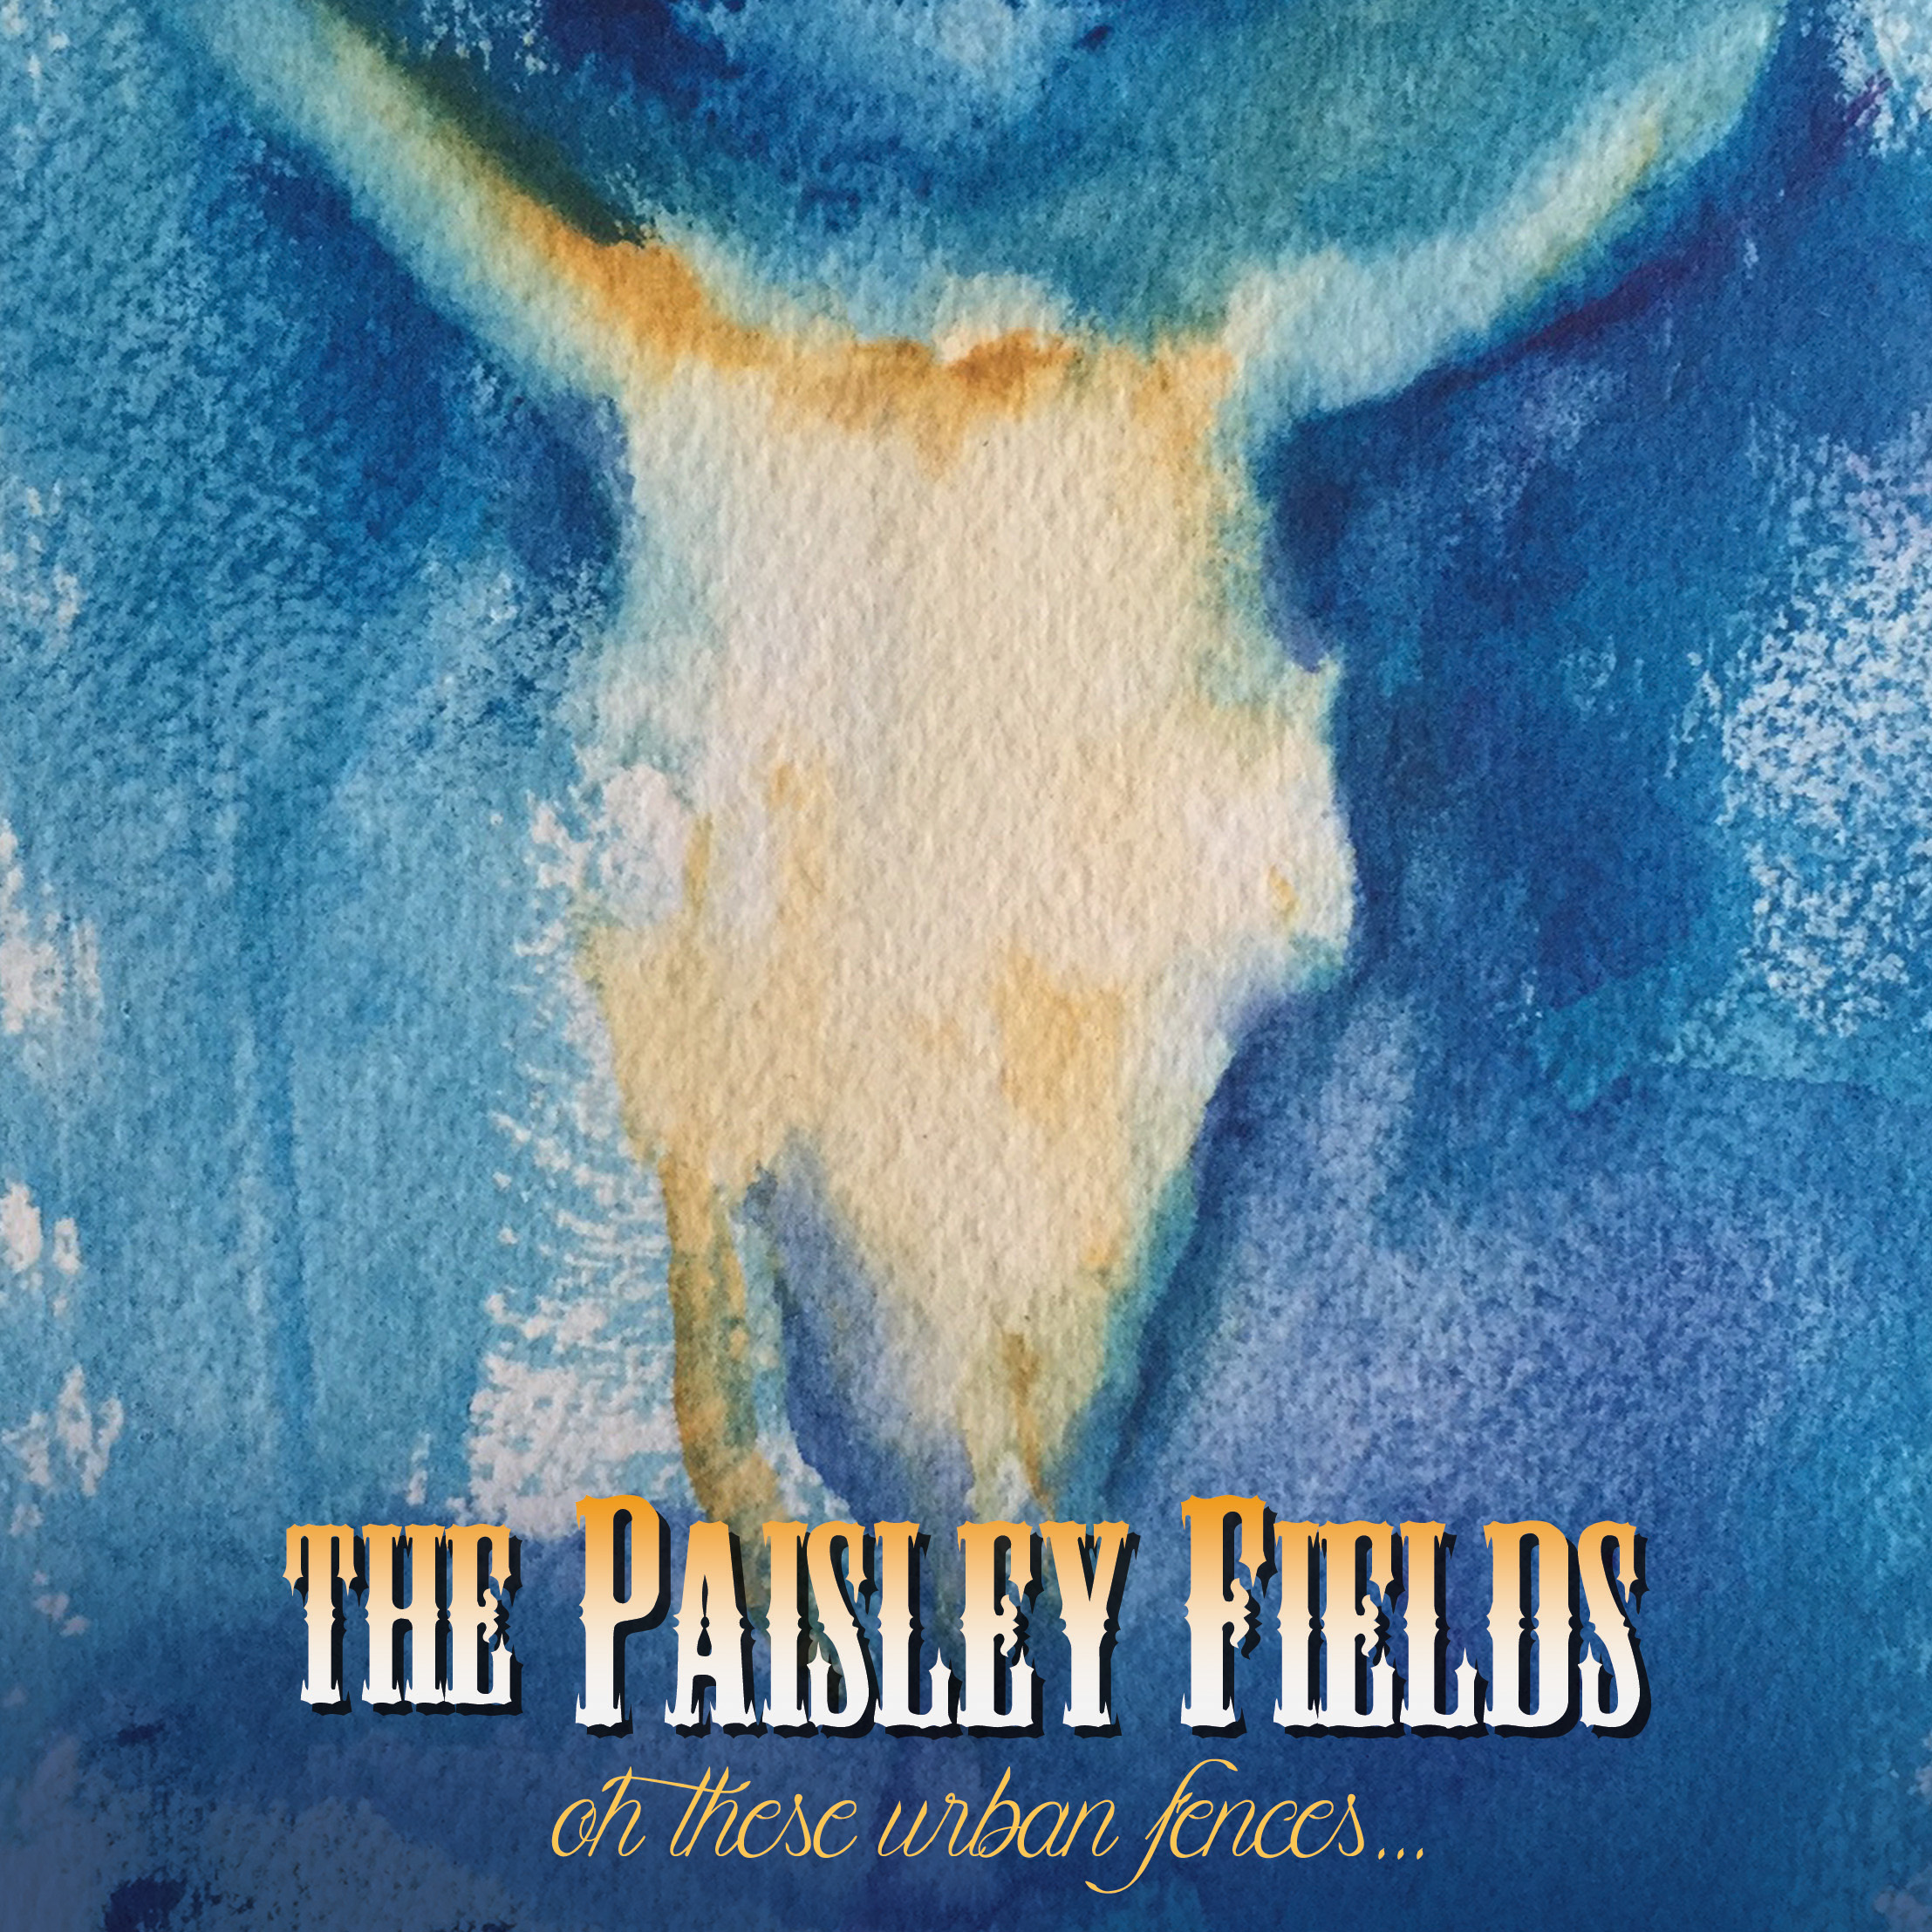 Get an advance copy of the new record on  iTunes  or in the store:  thepaisleyfields.com/store